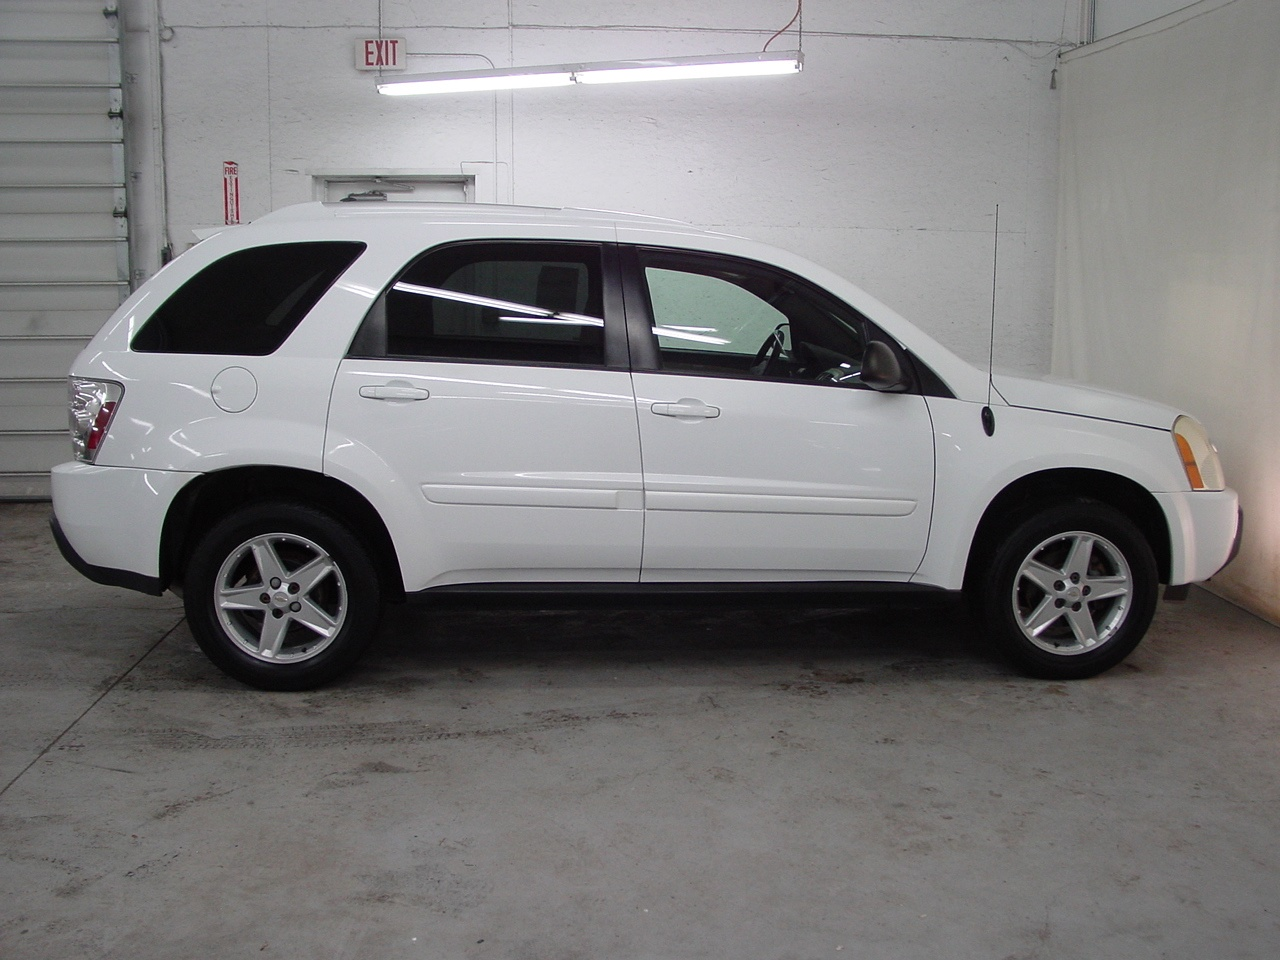 2005 Chevrolet Equinox LT - Biscayne Auto Sales | Pre-owned ...